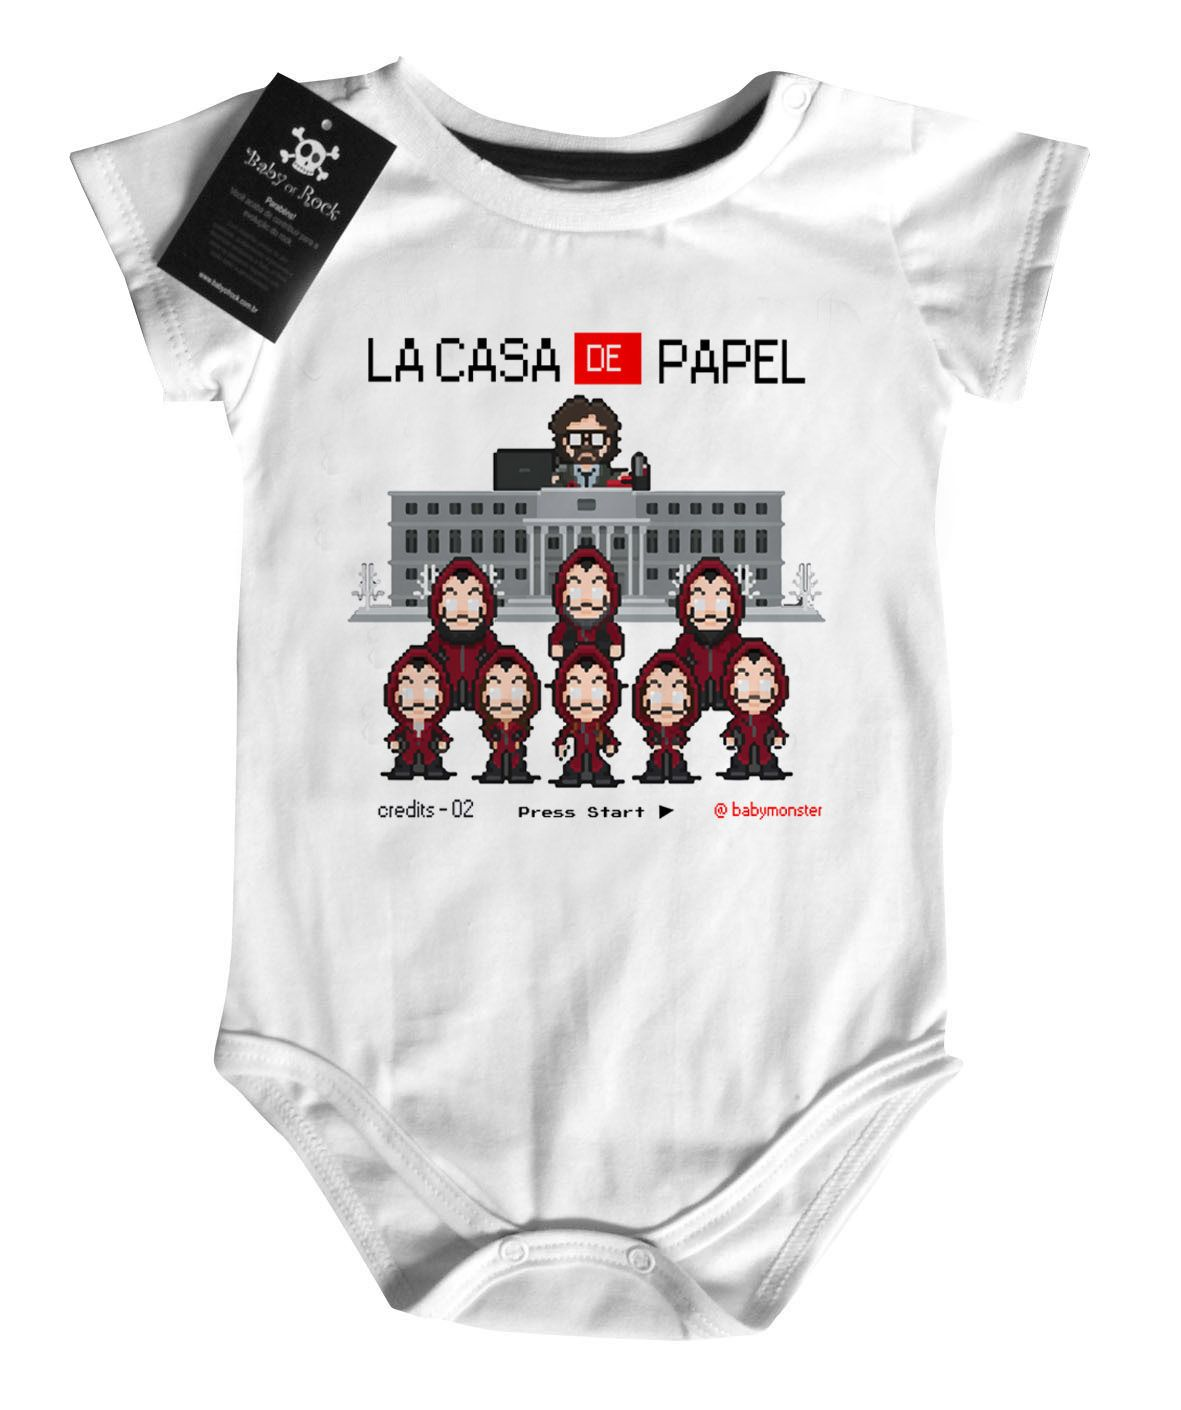 Body Bebe de Rock La casa de Papel Nerd / Geek - White  - Baby Monster S/A